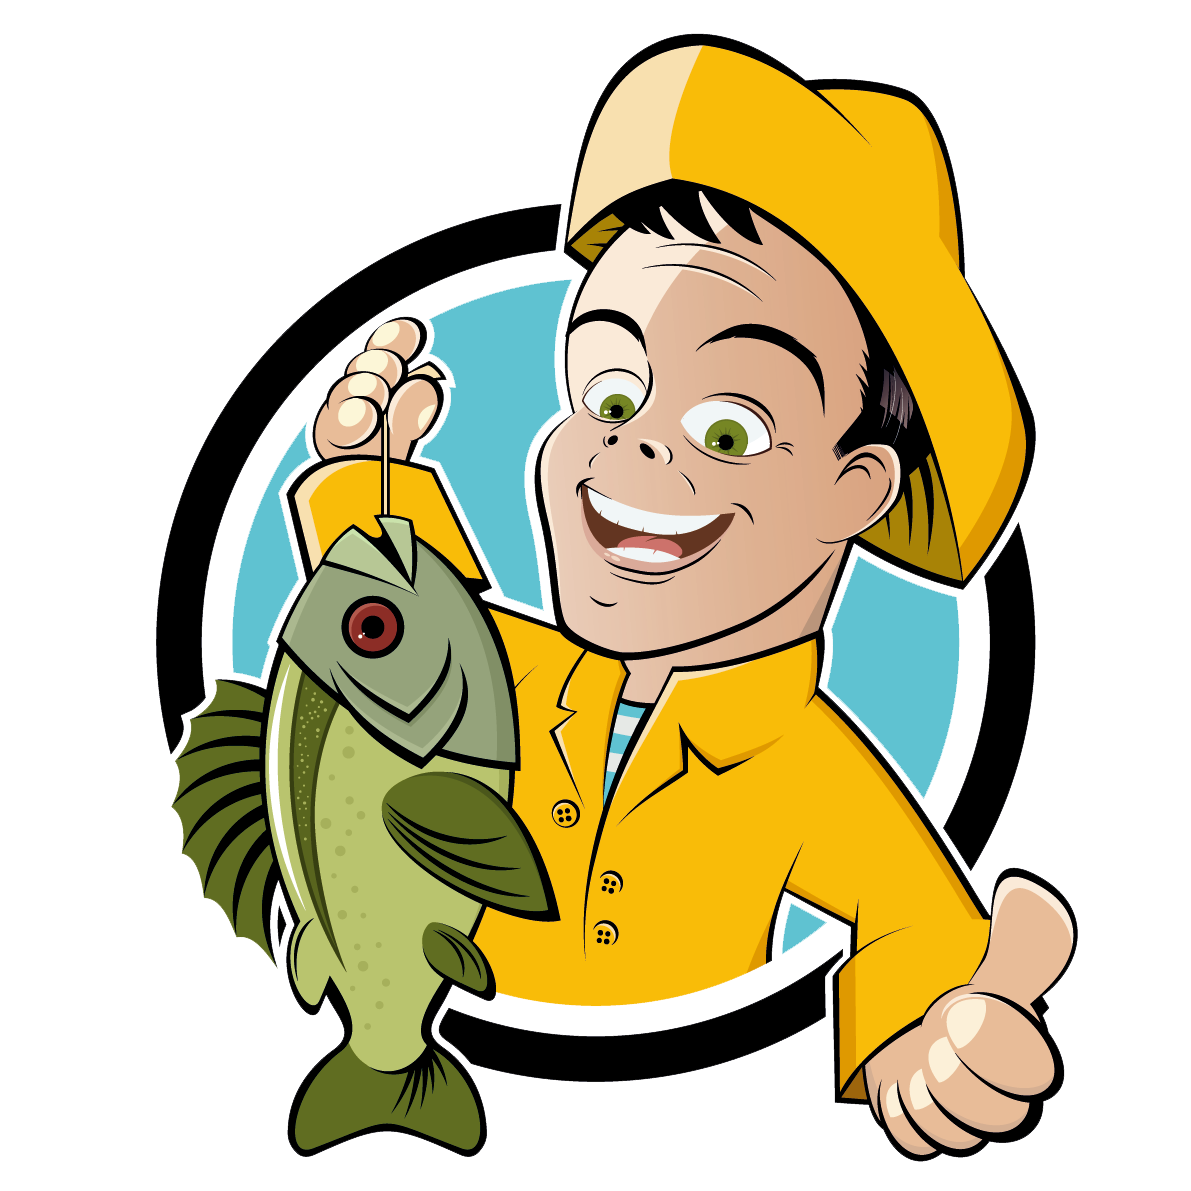 Clipart fish and fishermen clip stock Fishing Cartoon Fisherman Clip art - Fisherman with fish 1191*1191 ... clip stock